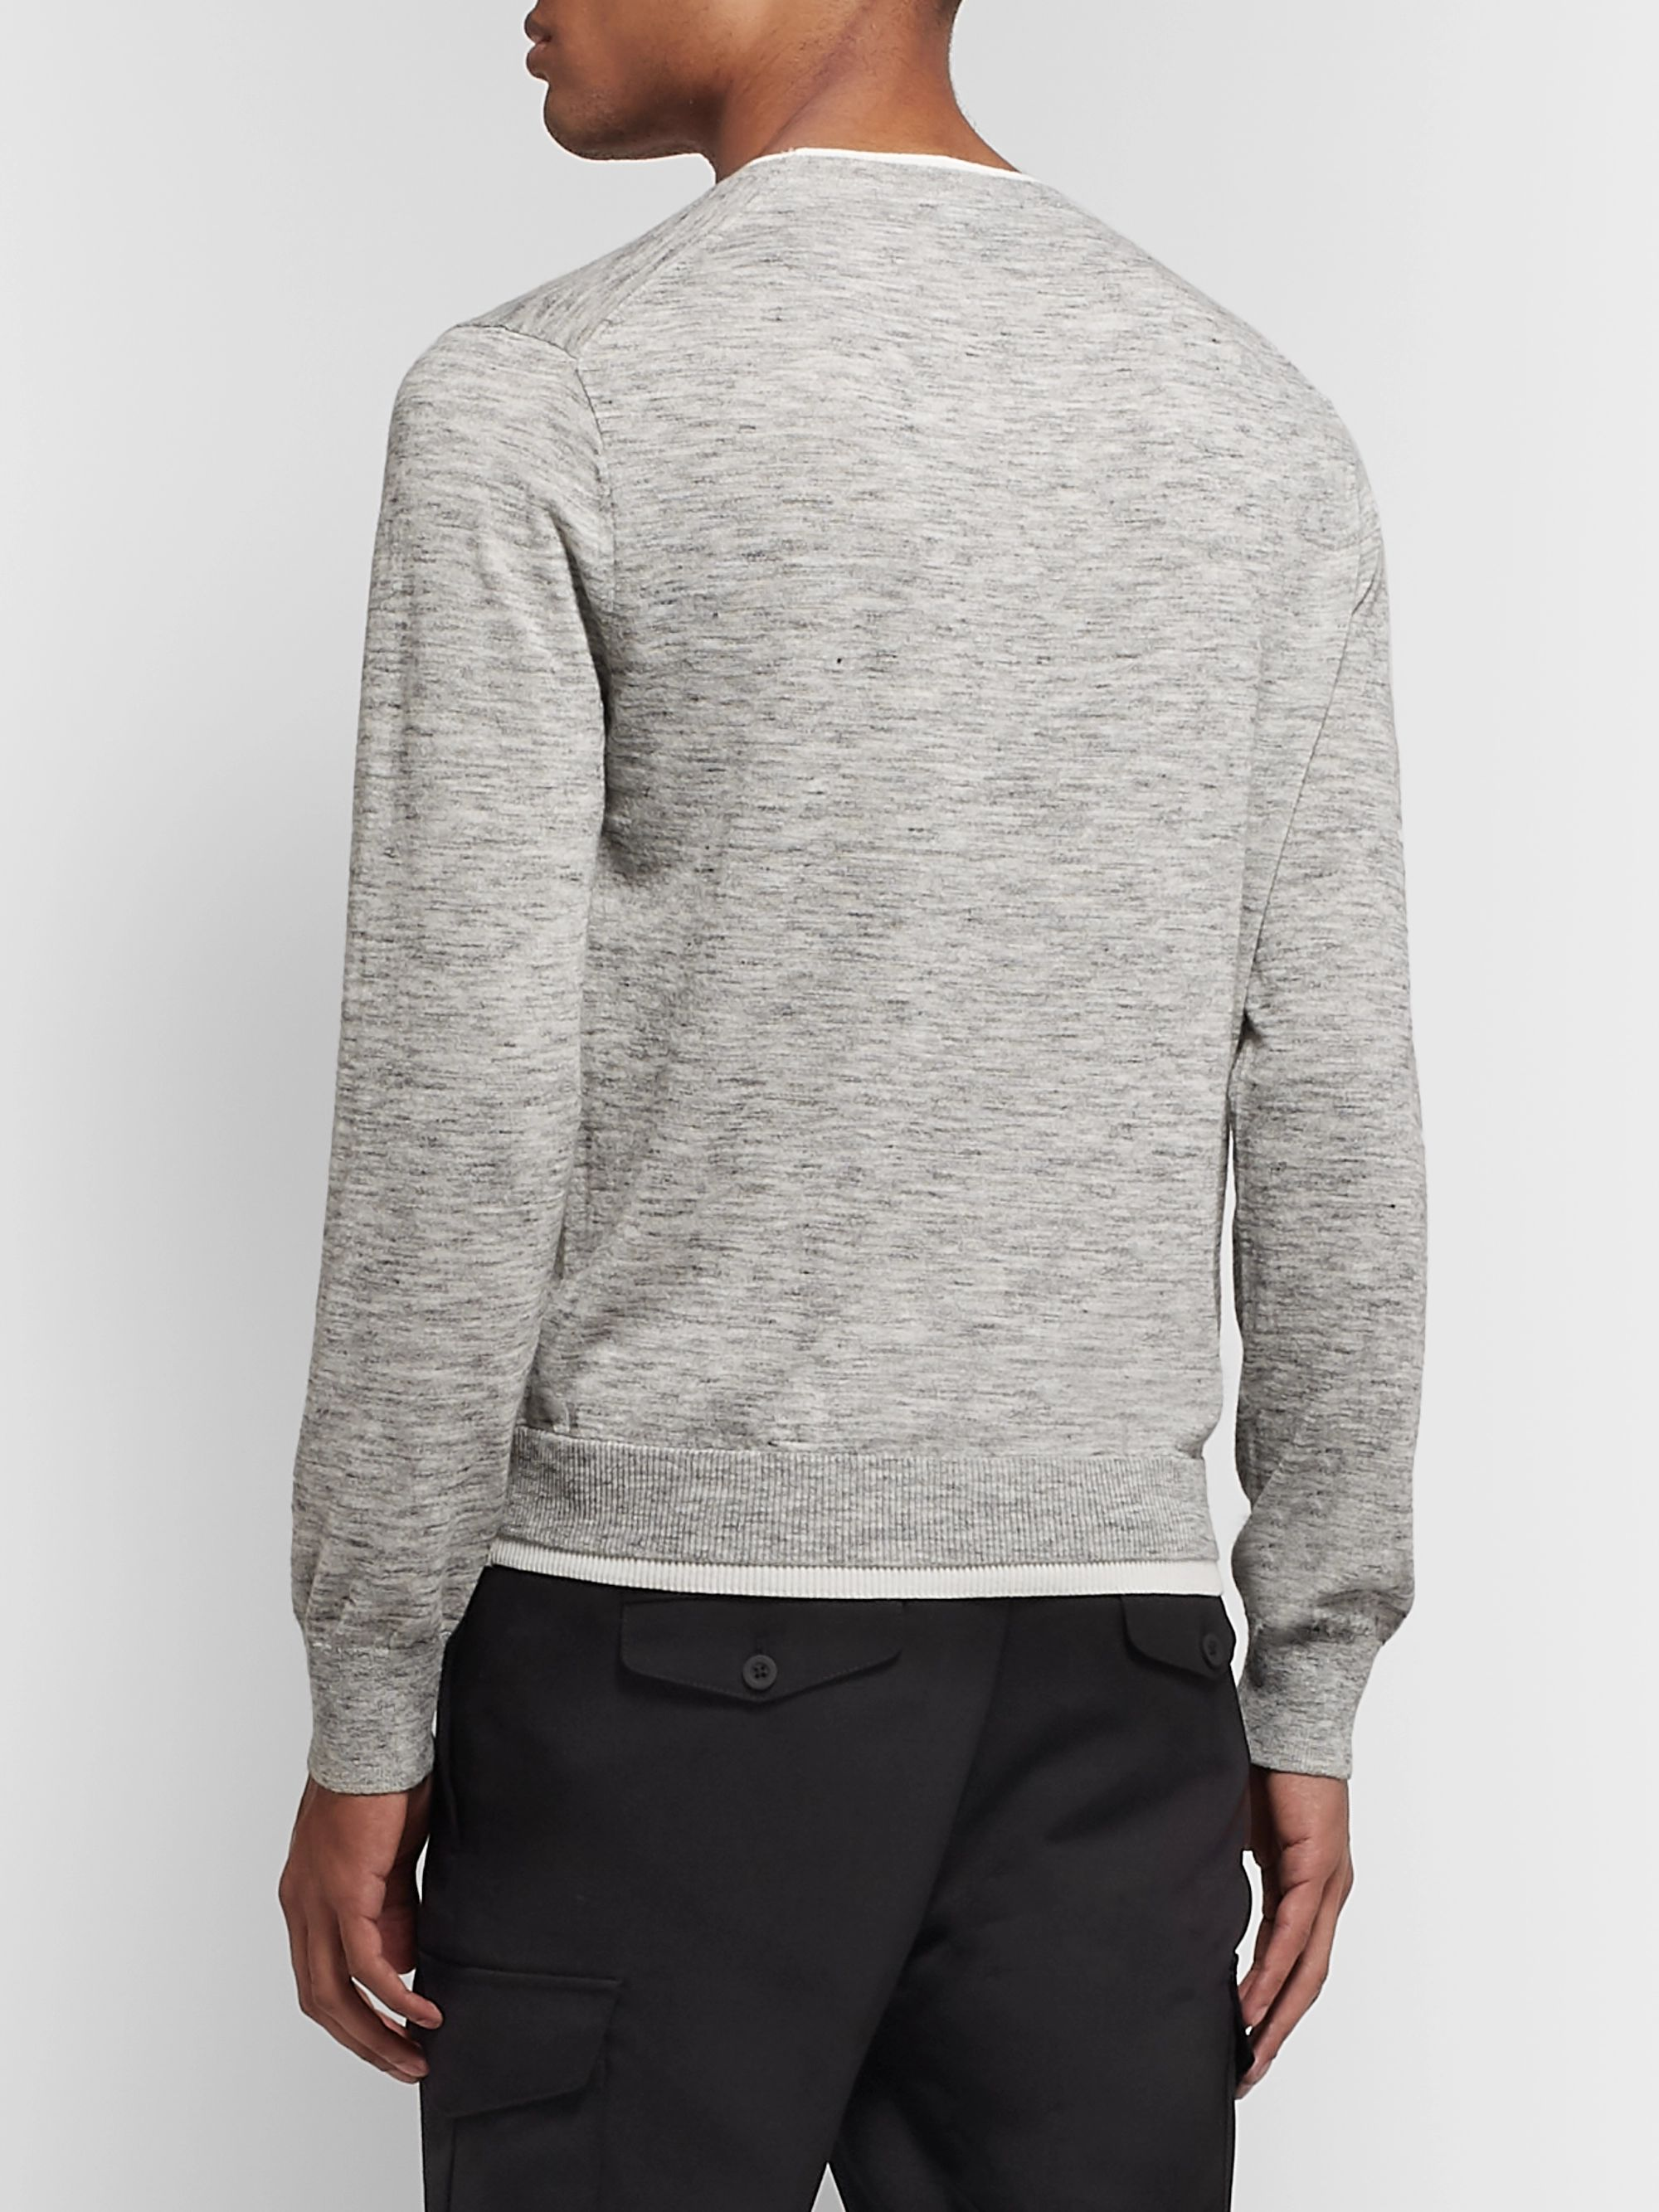 Club Monaco Layered Mélange Cotton-Blend Sweater